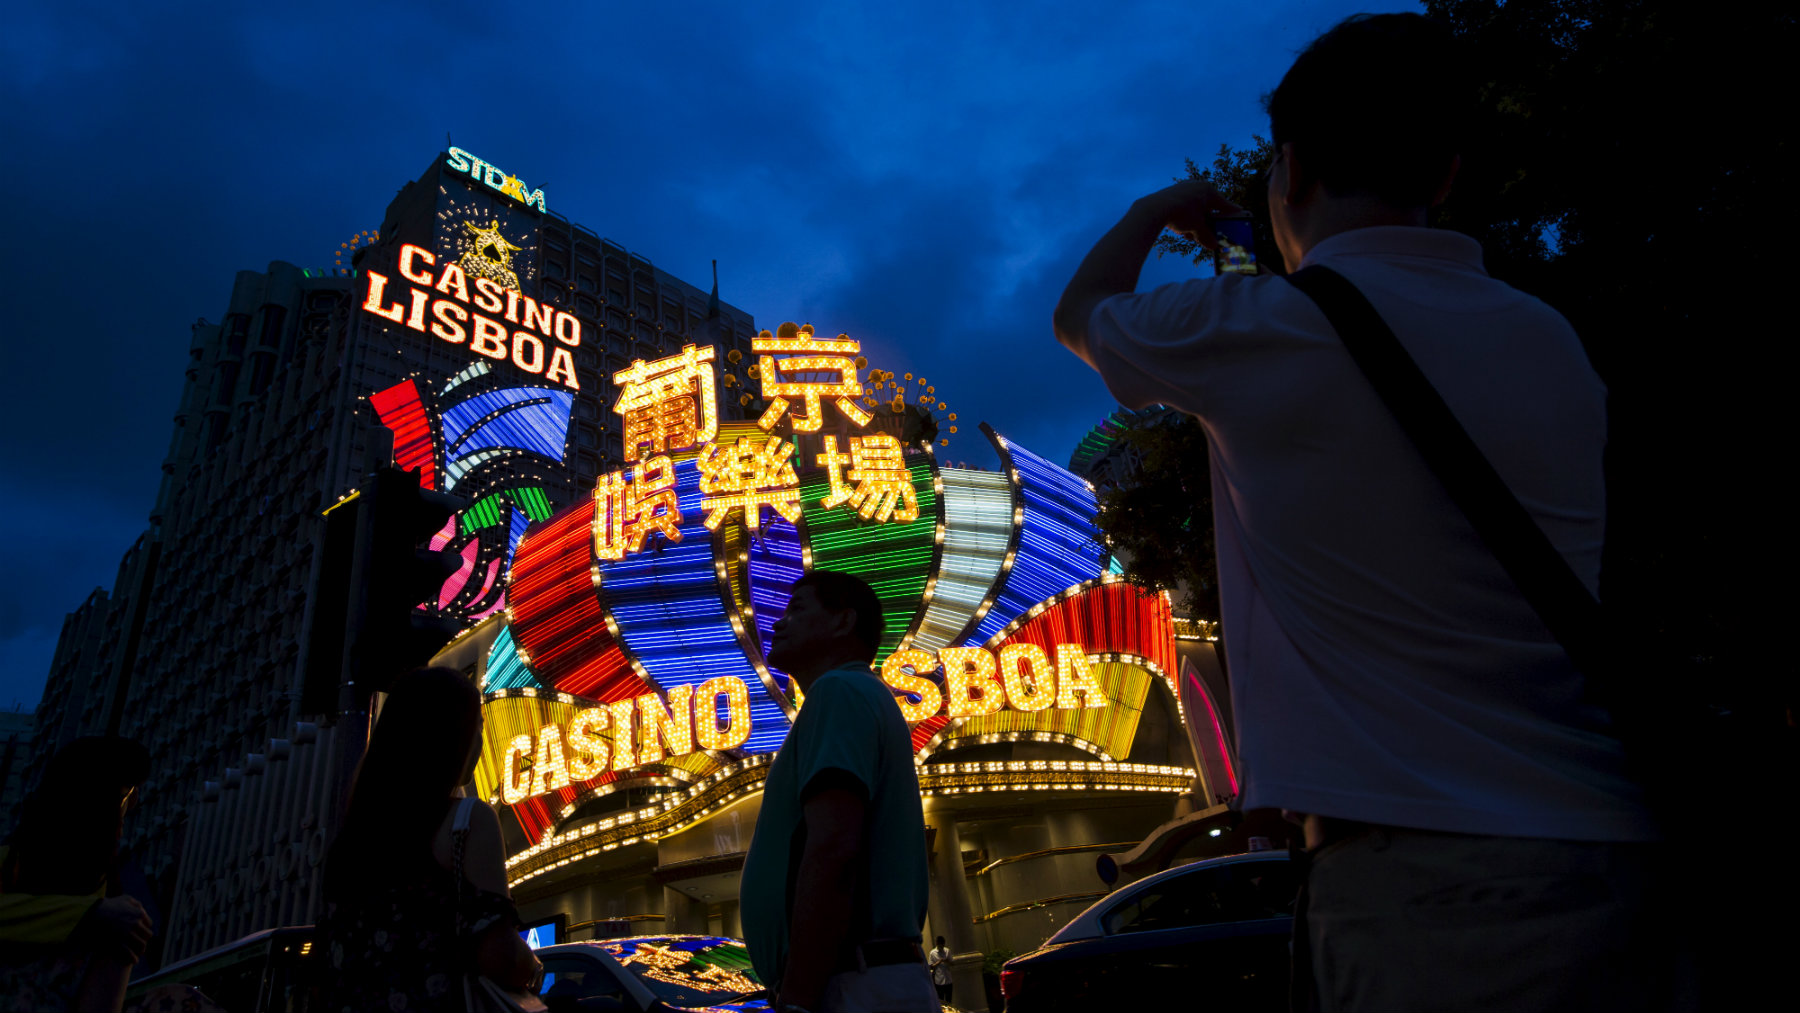 Mainland Chinese visitors are pictured in front of Casino Lisboa in Macau, China August 29, 2015. REUTERS/Tyrone Siu